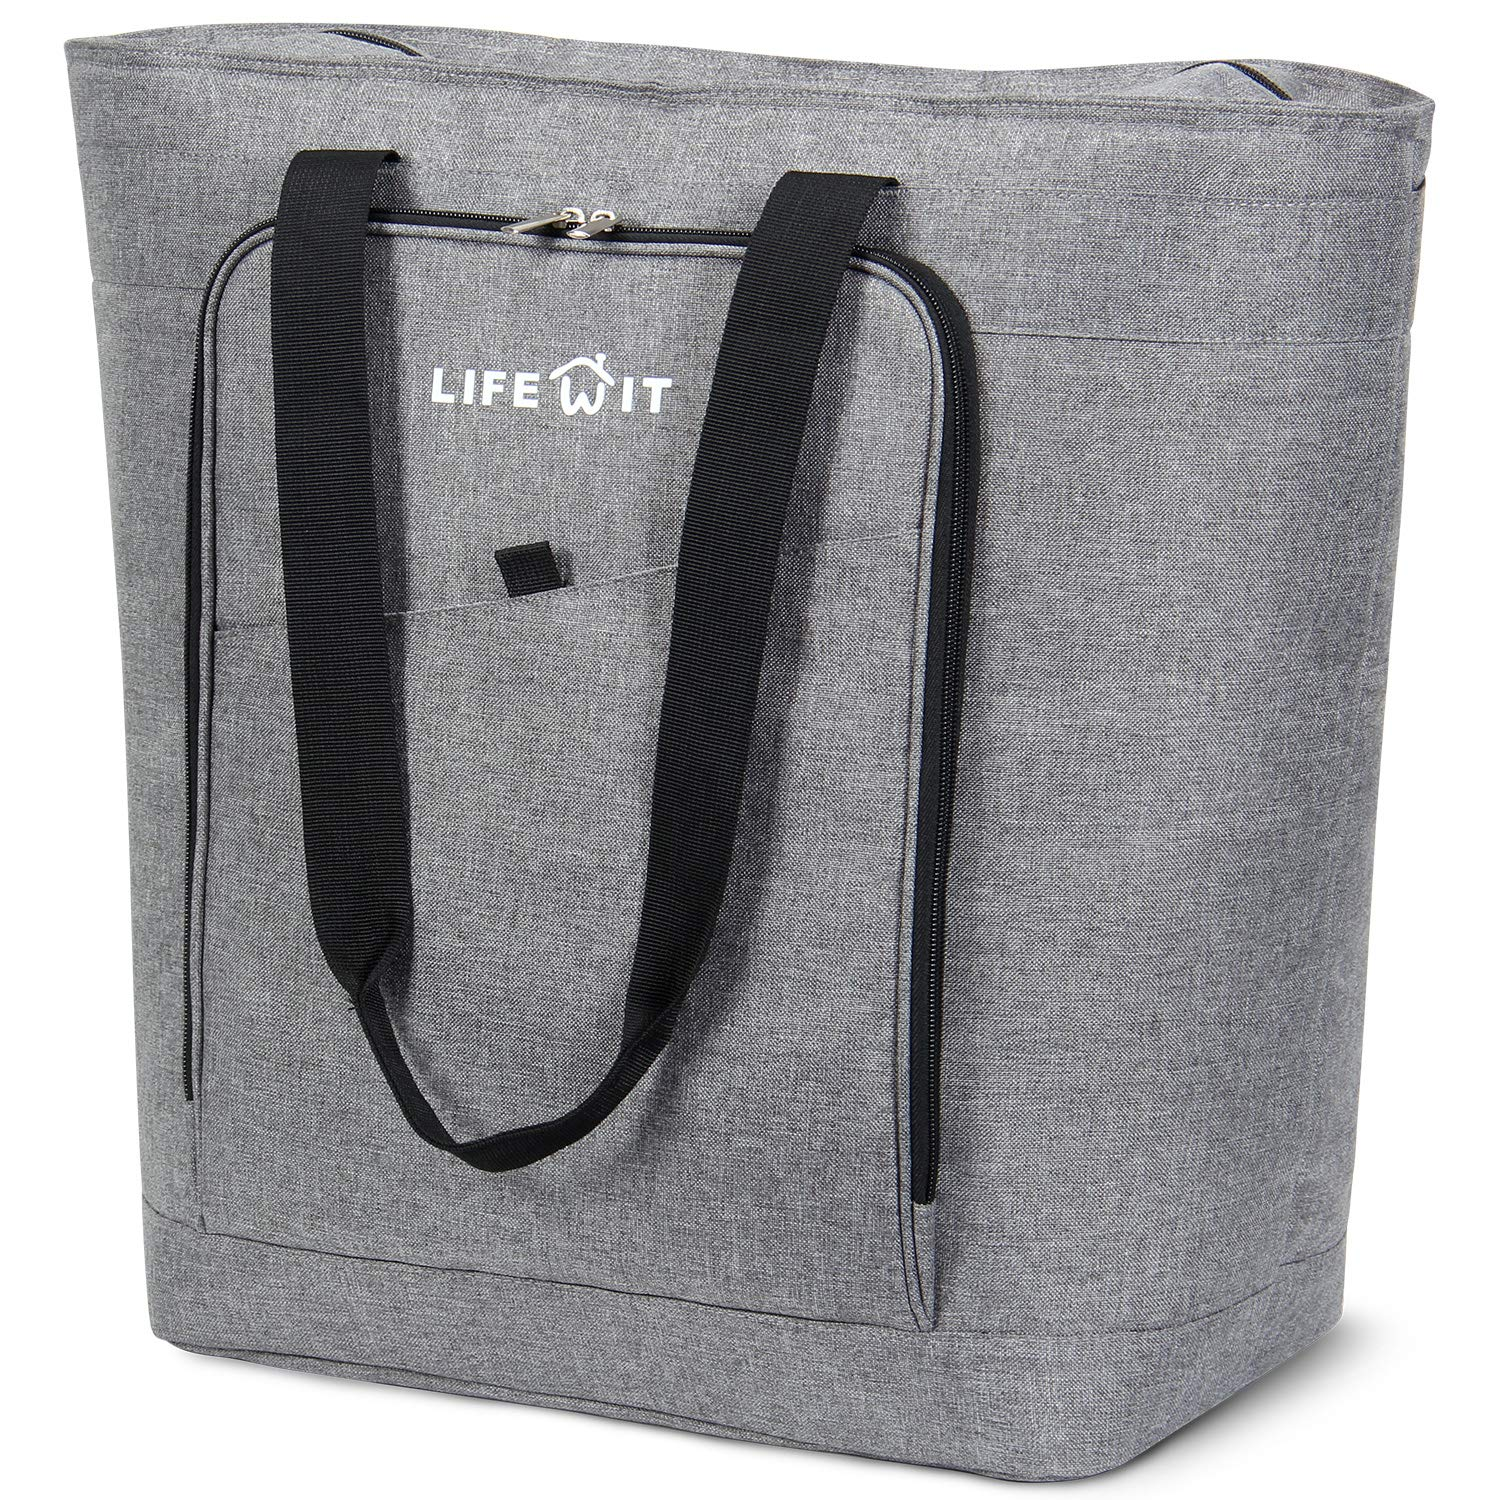 Lifewit Jumbo Reusable Grocery Shopping Bags 45L Foldable Tote Insulated Bag, Transport Hot and Cold Food, Grey